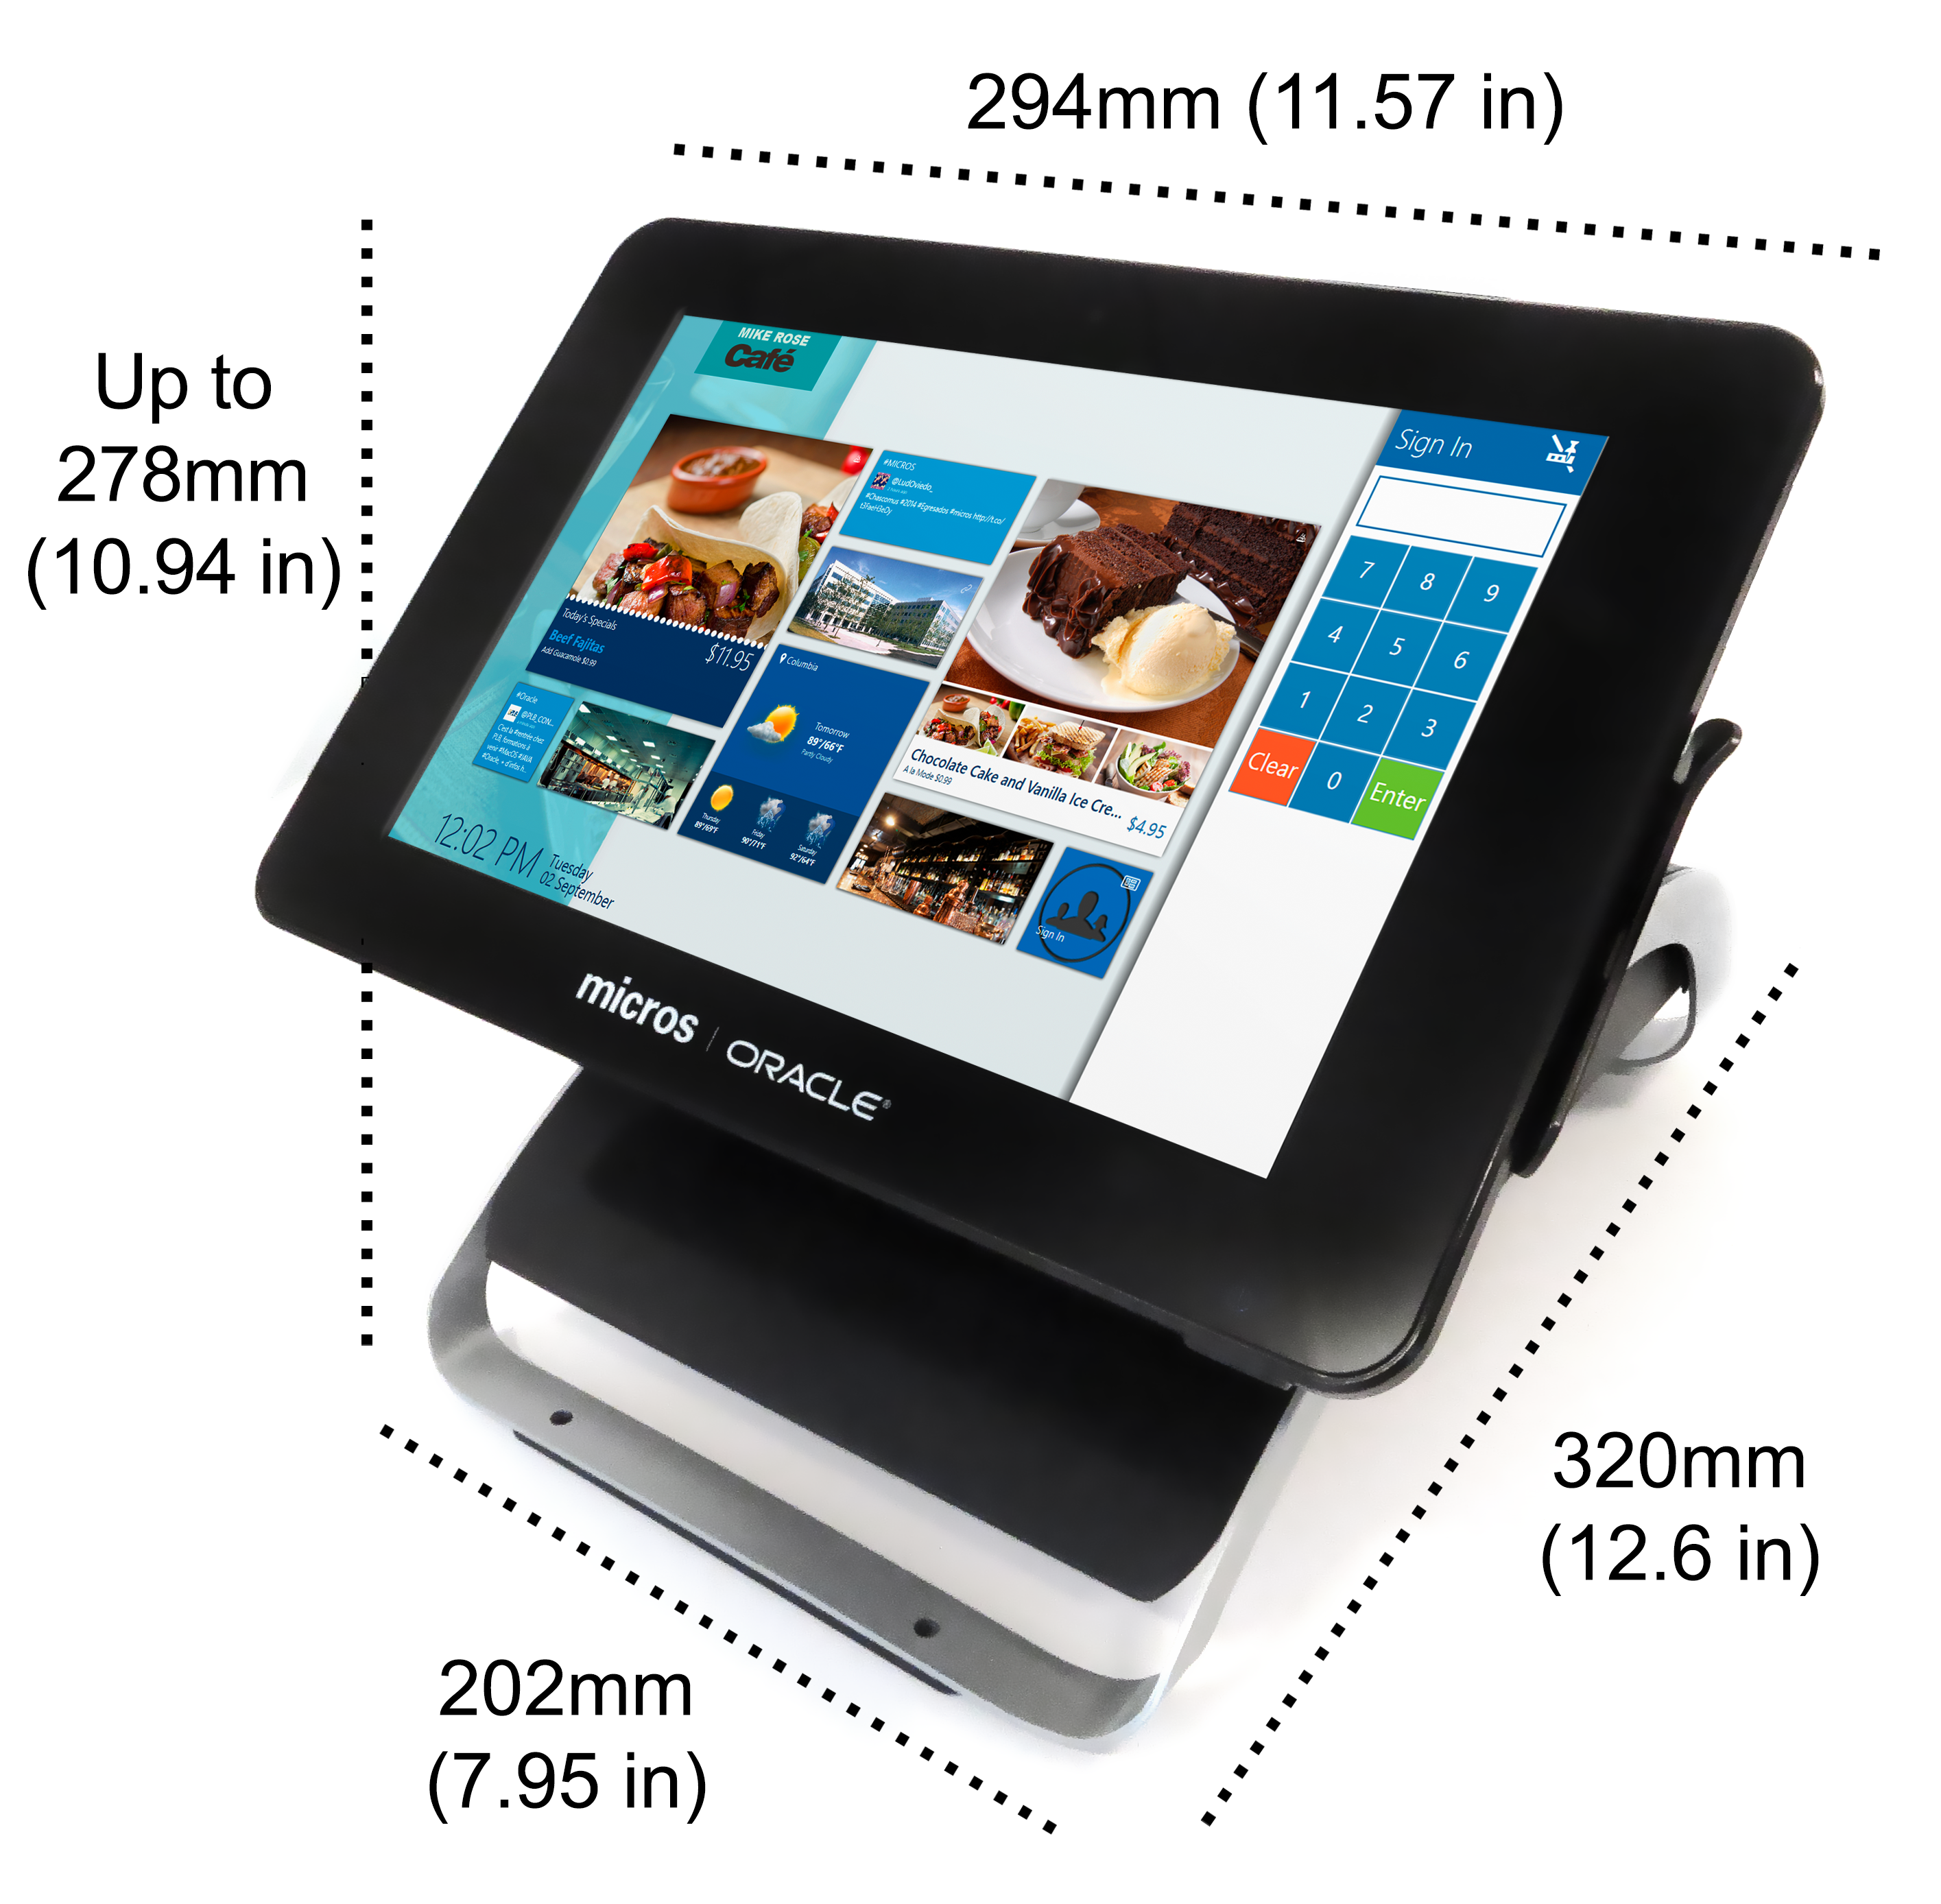 MICROS Compact Workstation 310 with Flexible Stand ...